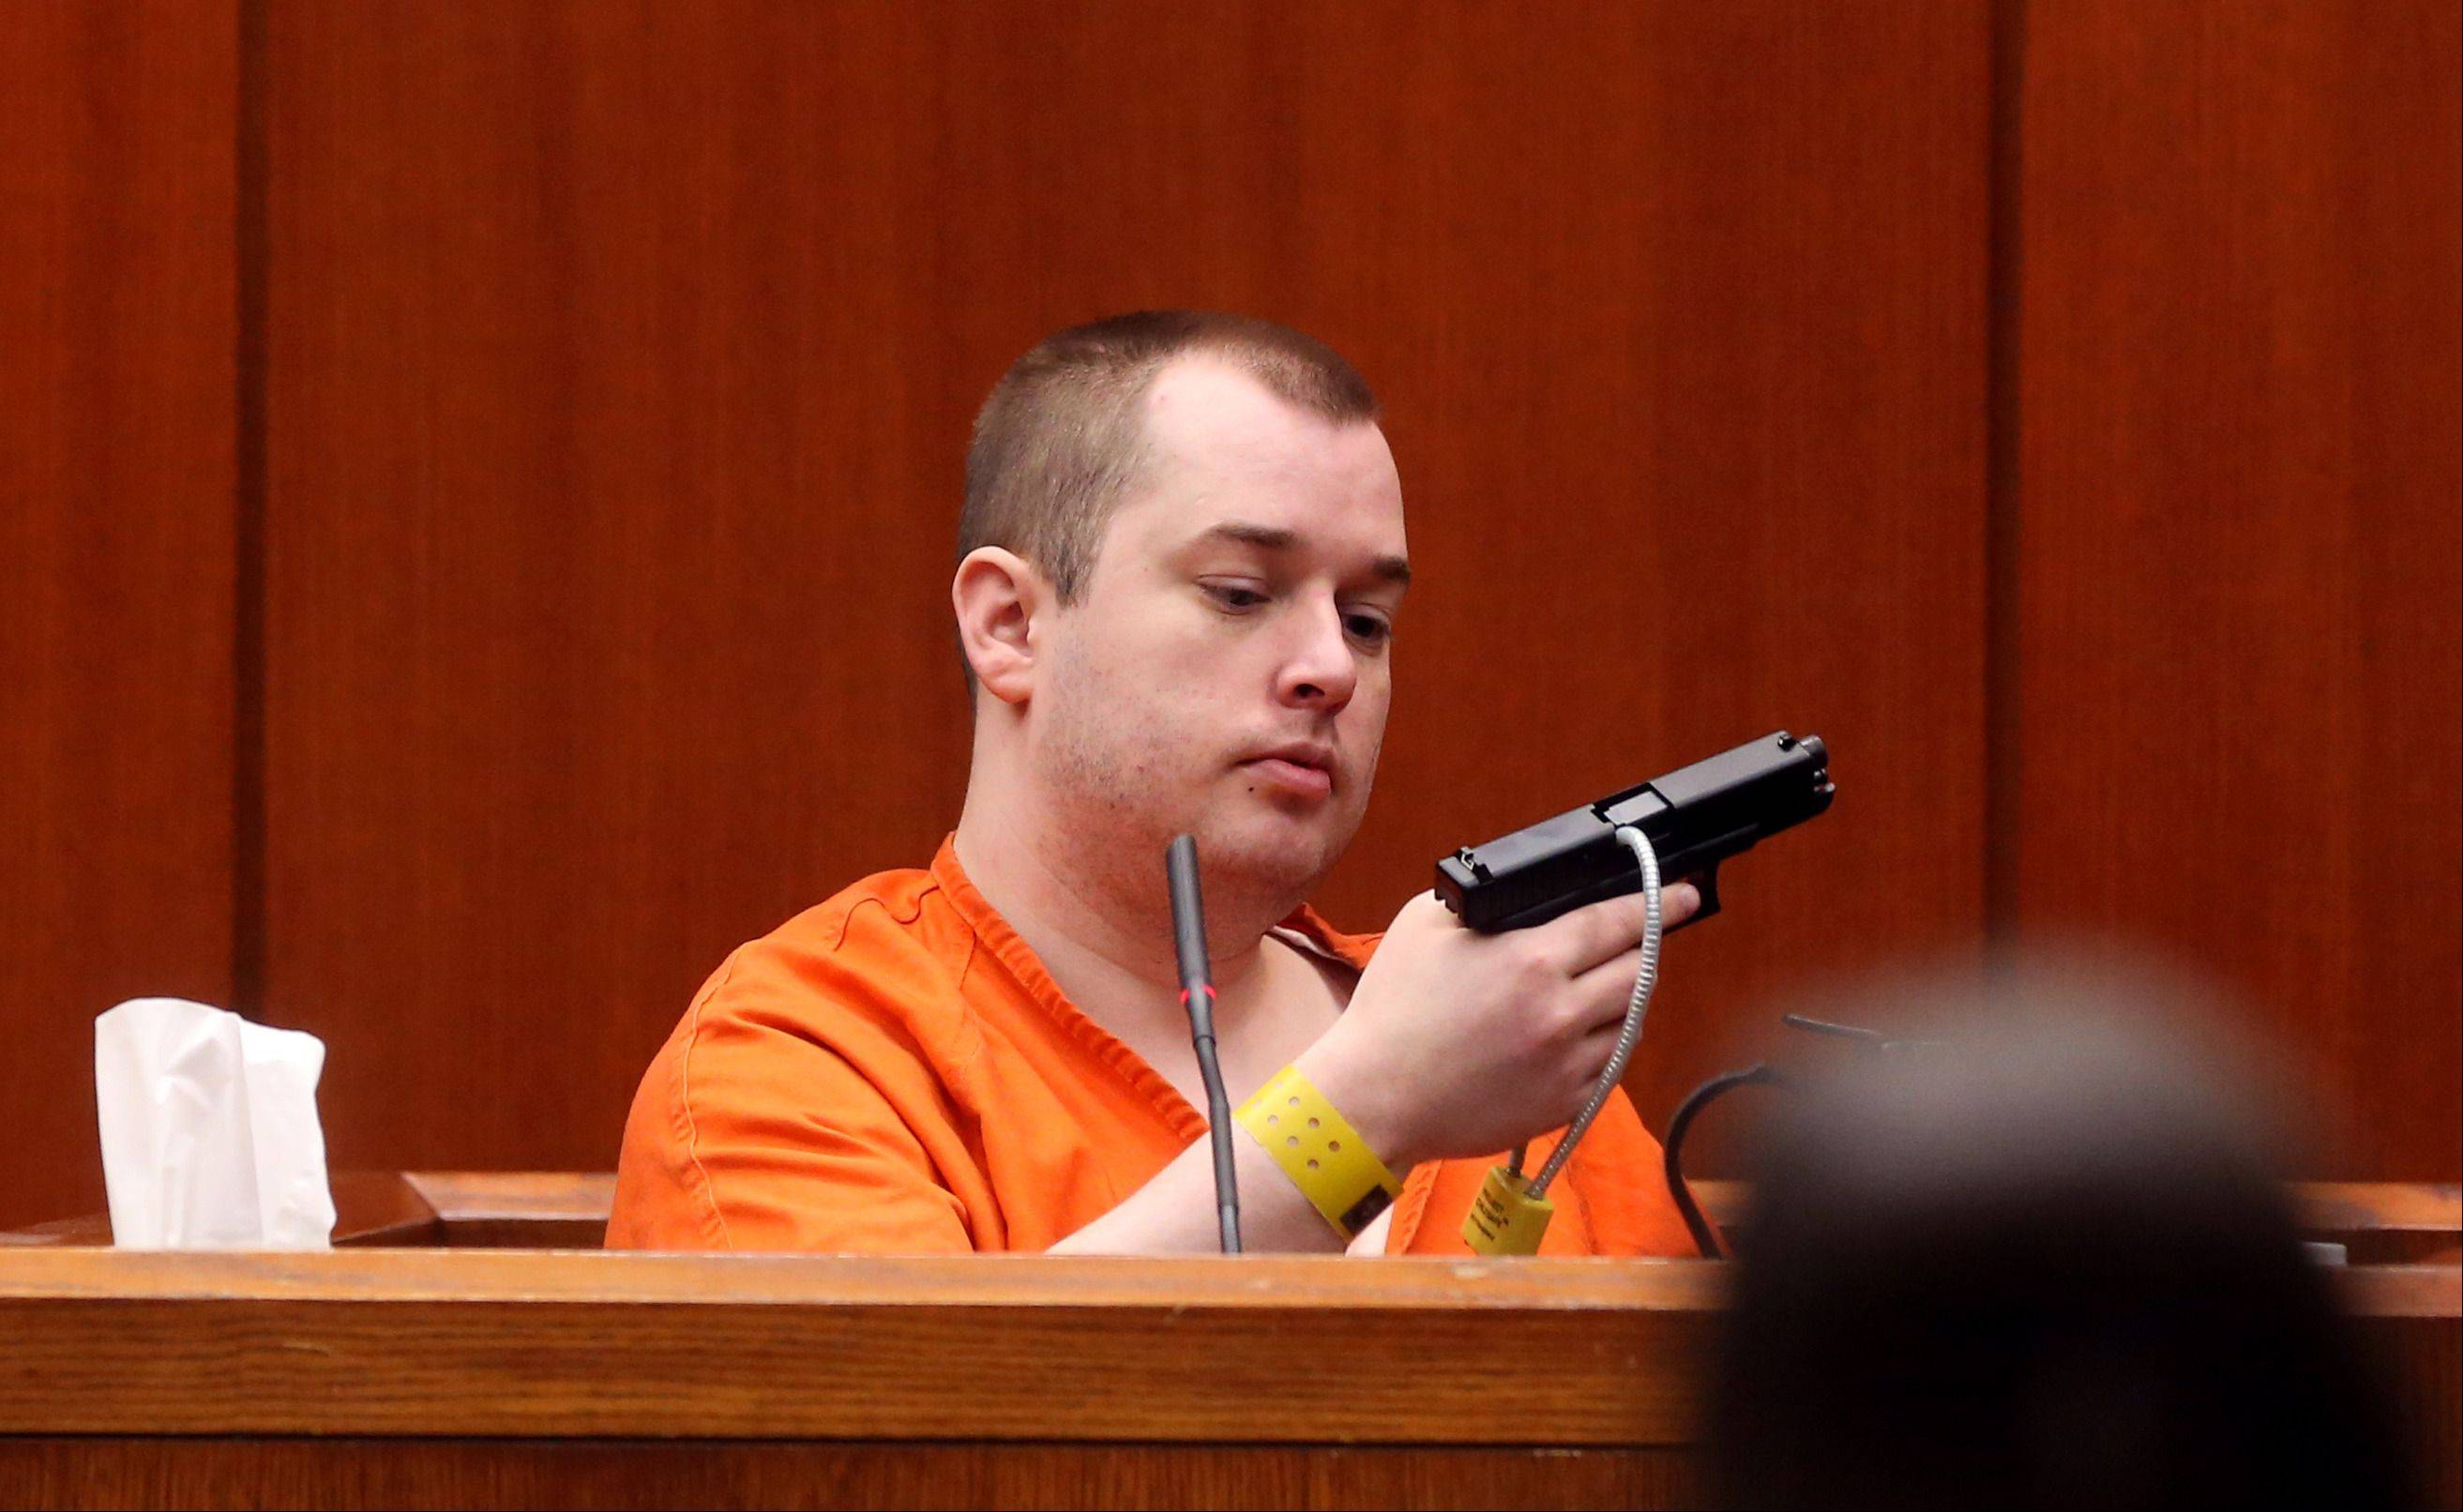 Triple-murder gunman will face cameras at sentencing